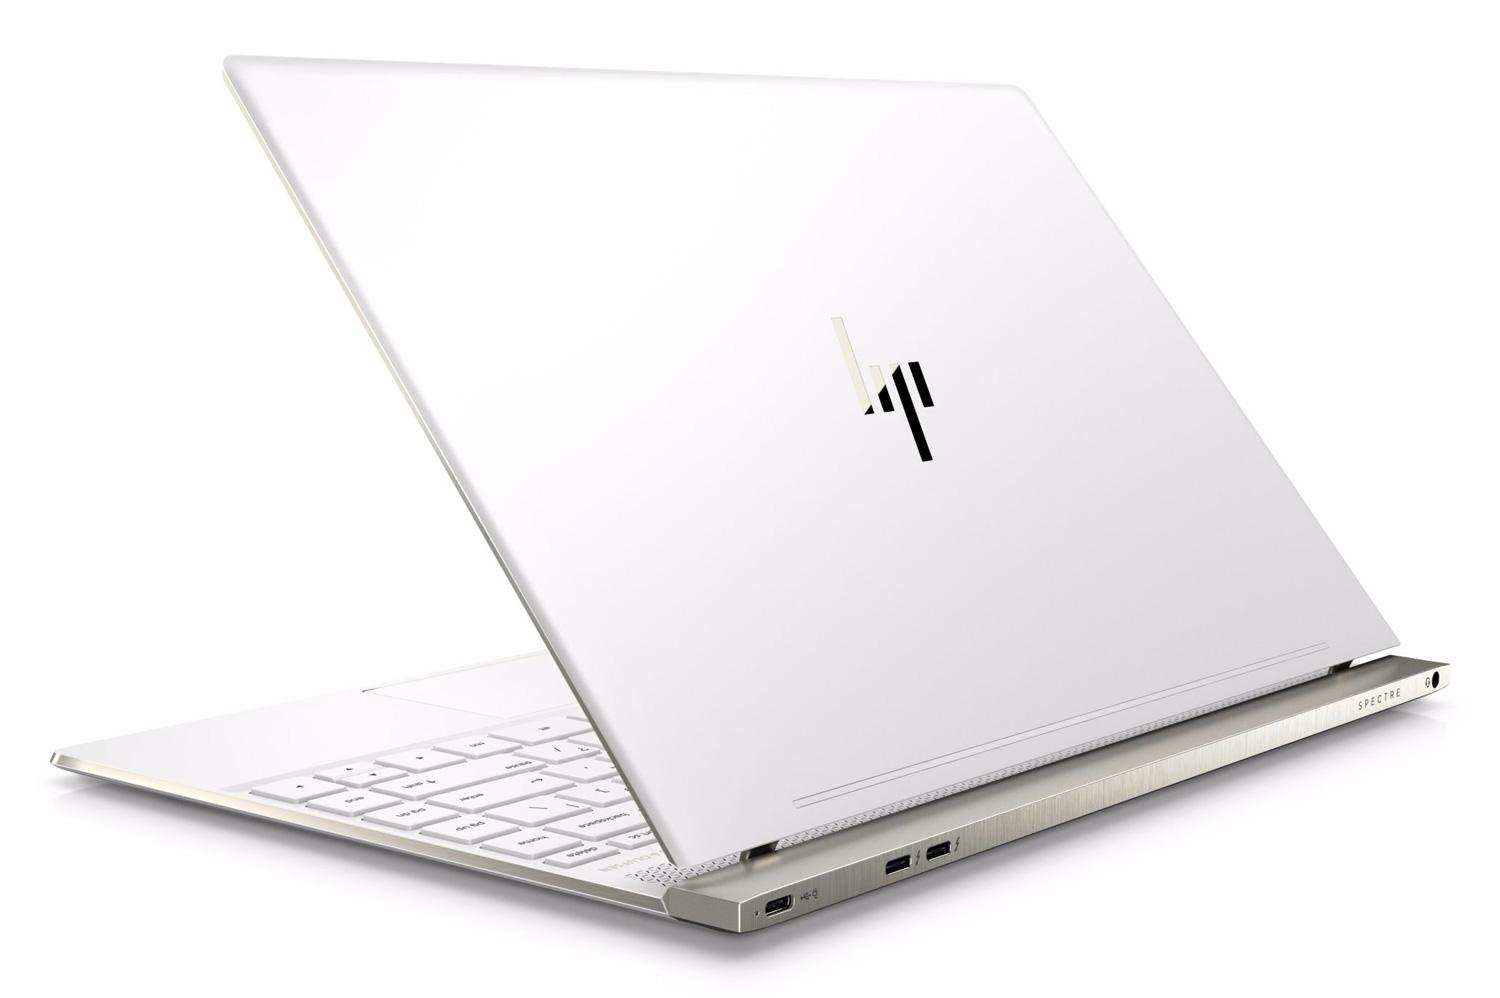 Image du PC portable HP Spectre 13-af002nf Blanc Tactile